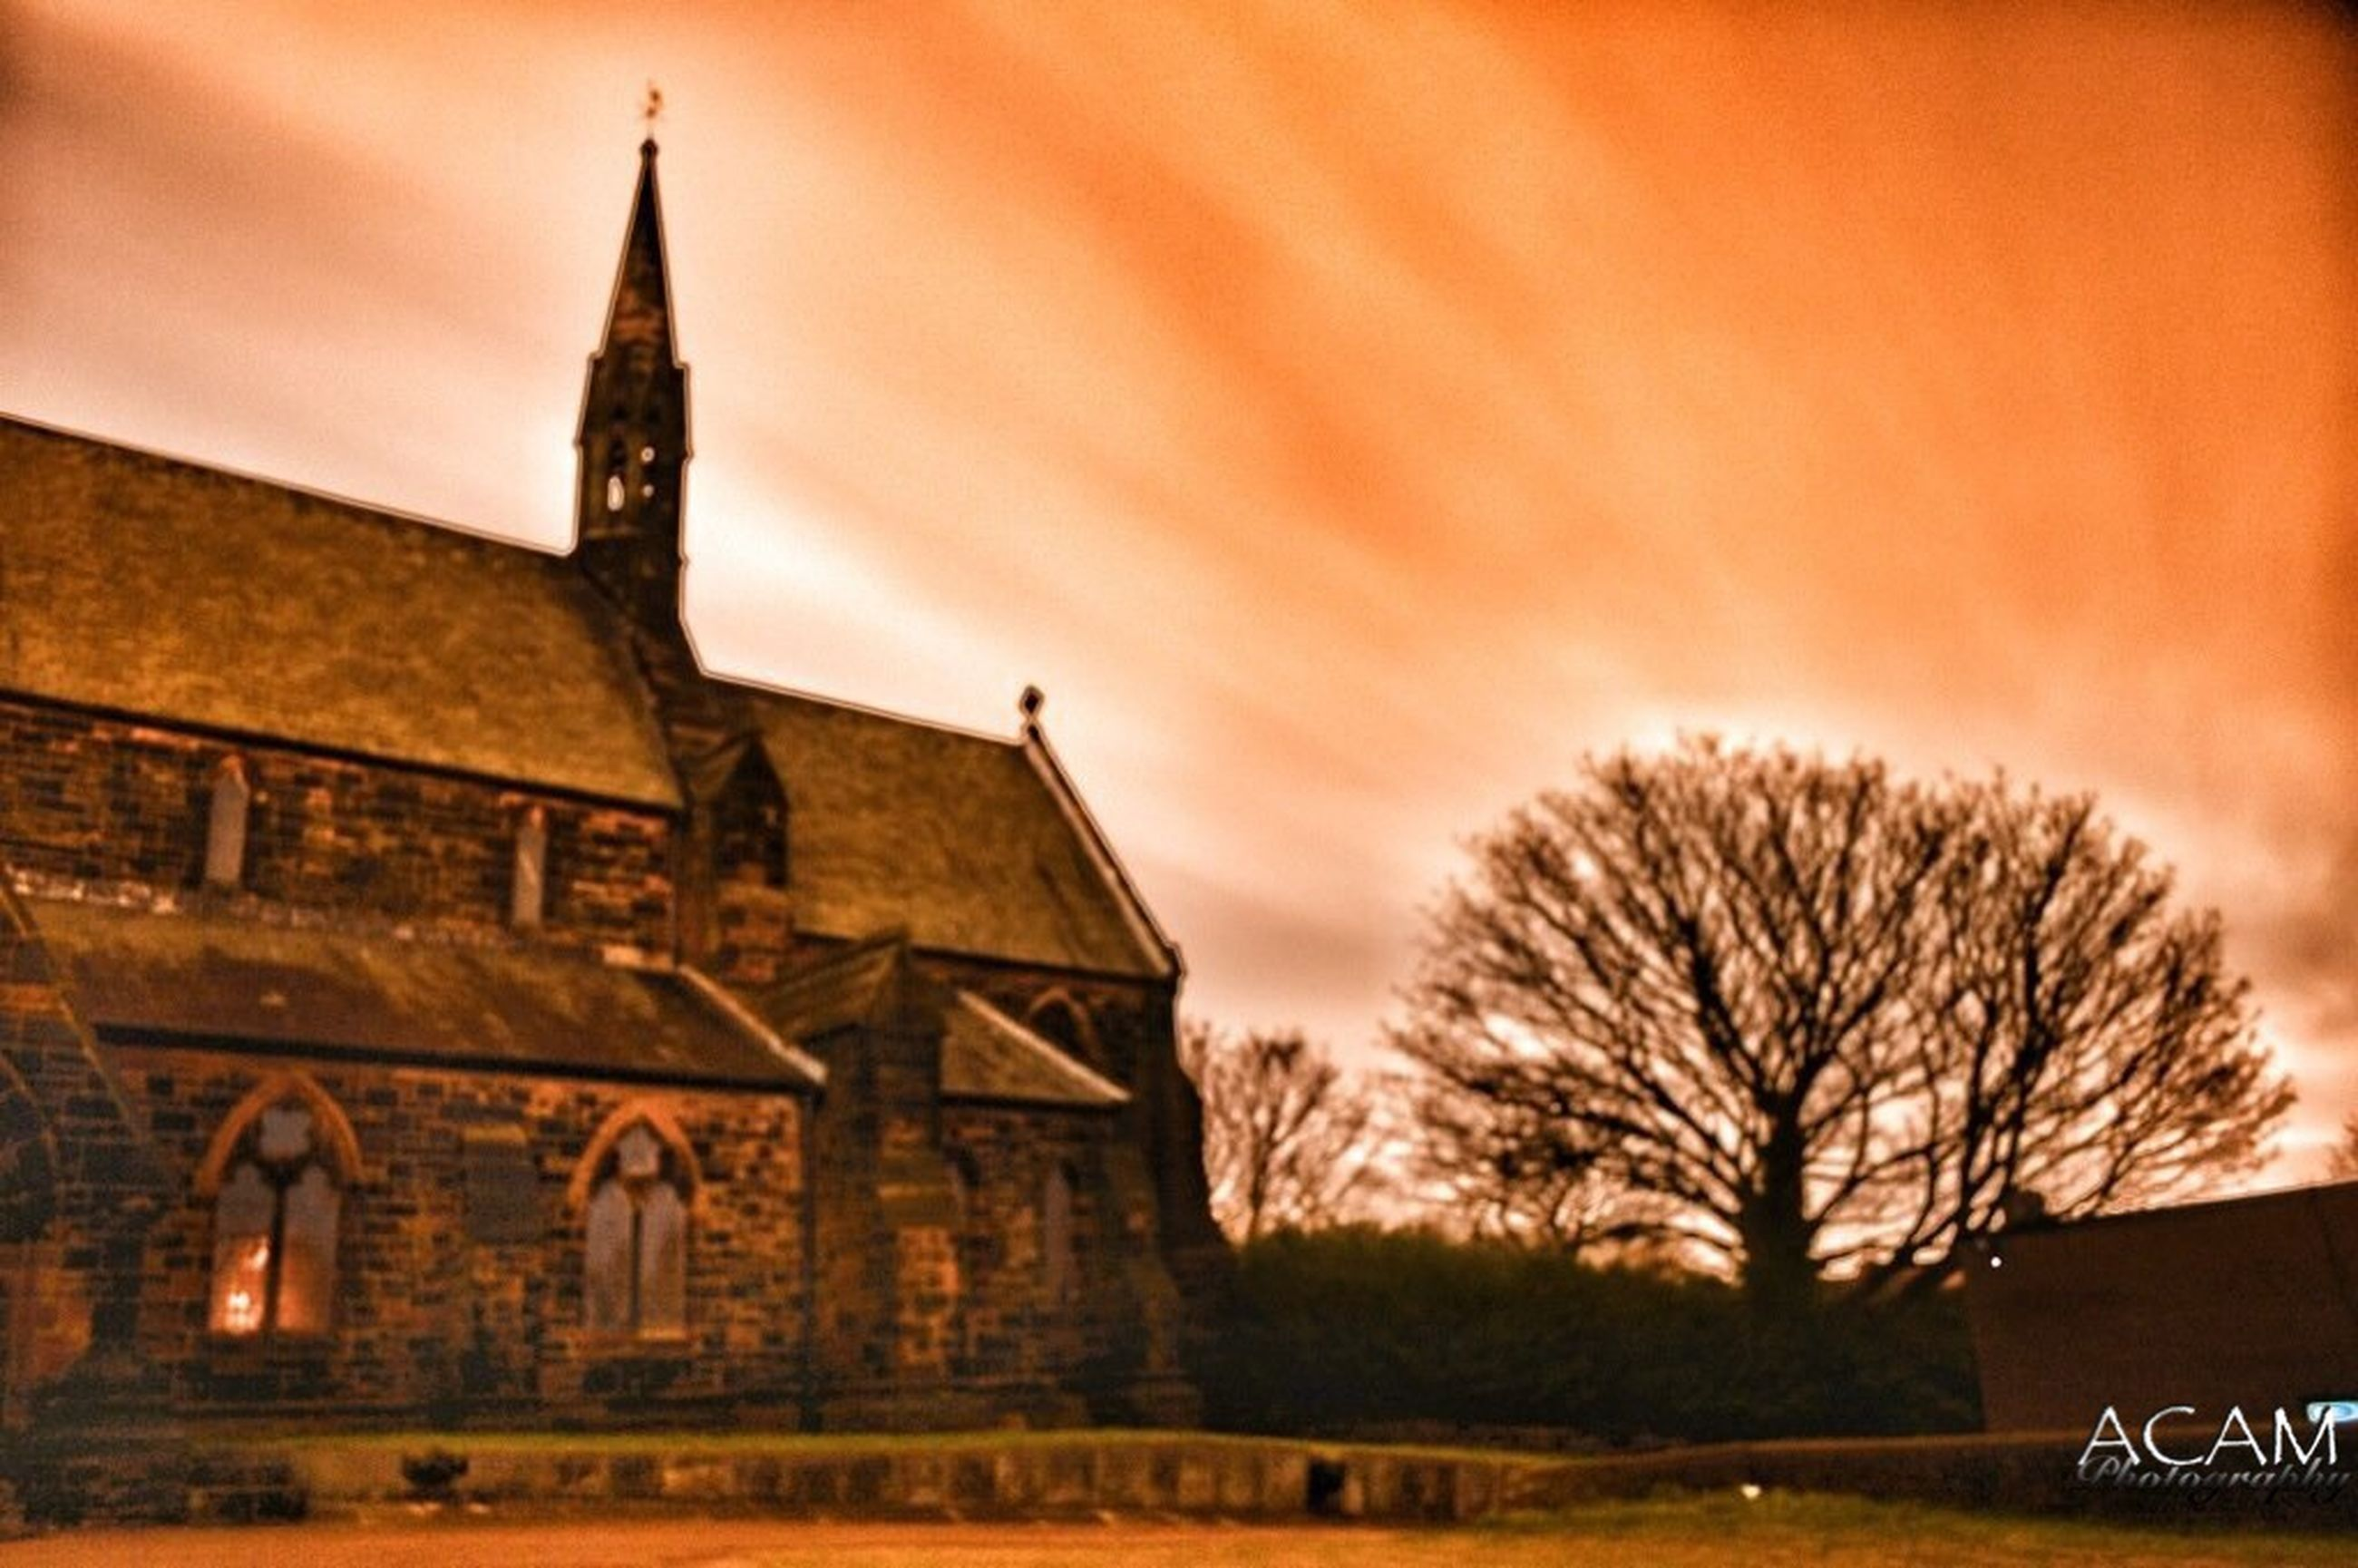 building exterior, architecture, built structure, tree, church, religion, place of worship, bare tree, sunset, low angle view, sky, spirituality, branch, outdoors, orange color, history, no people, cross